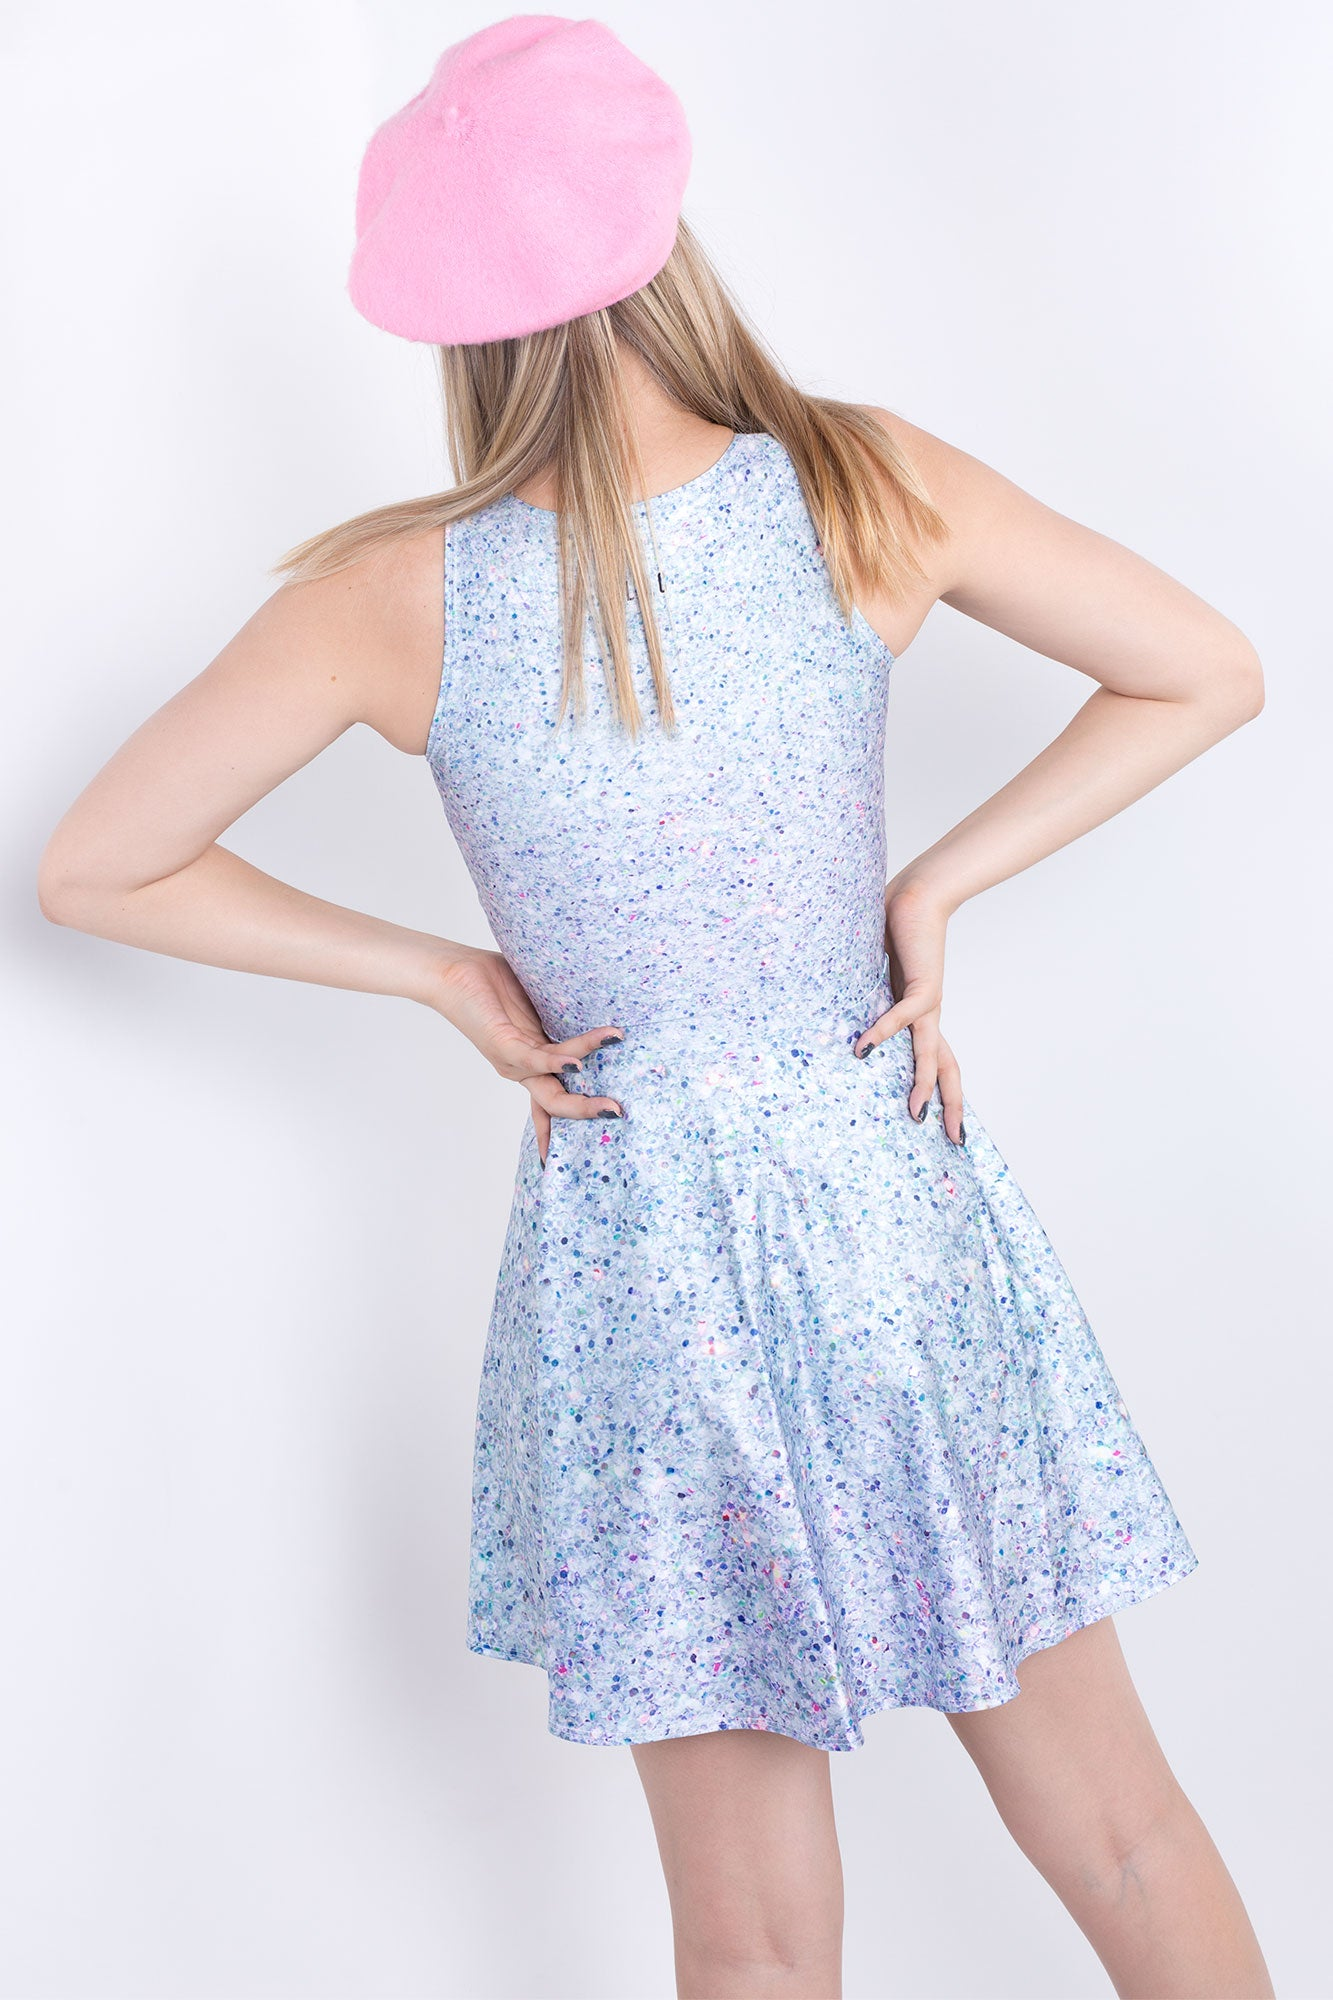 Holographic Glitter Vogue Dress